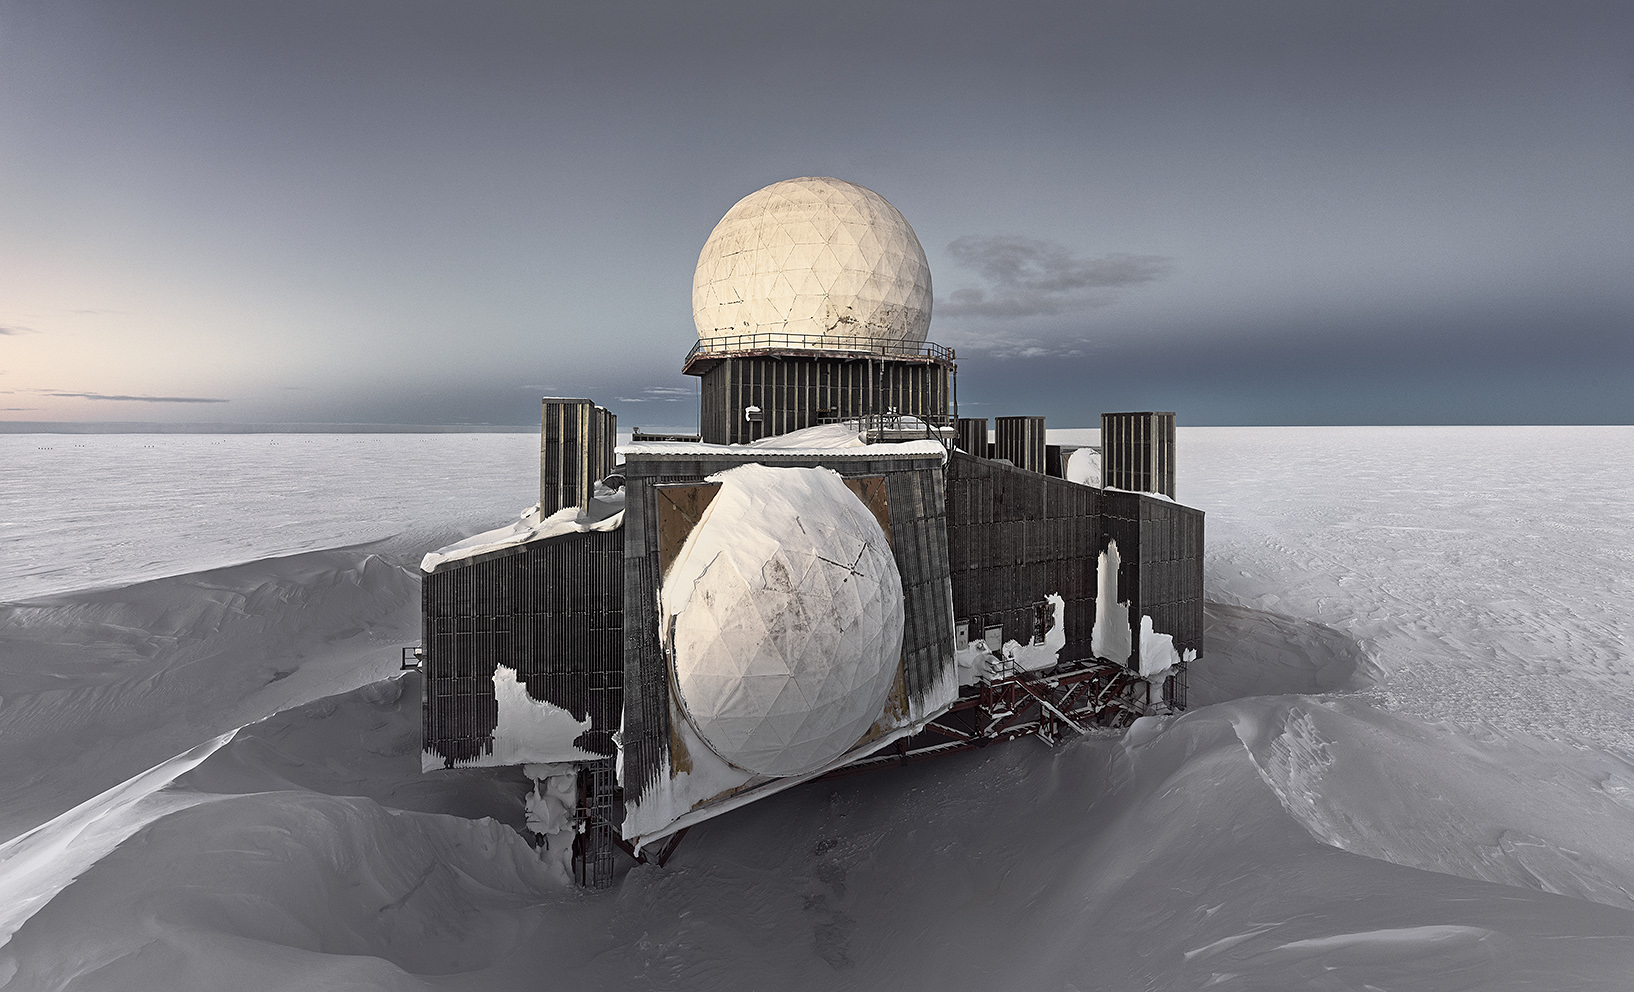 MURRAY FREDERICKS     DYE2 #1, abandoned missile detection station, Greenland Icesheet  2013 digital pigment print, edition of 7 100 x 165 cm